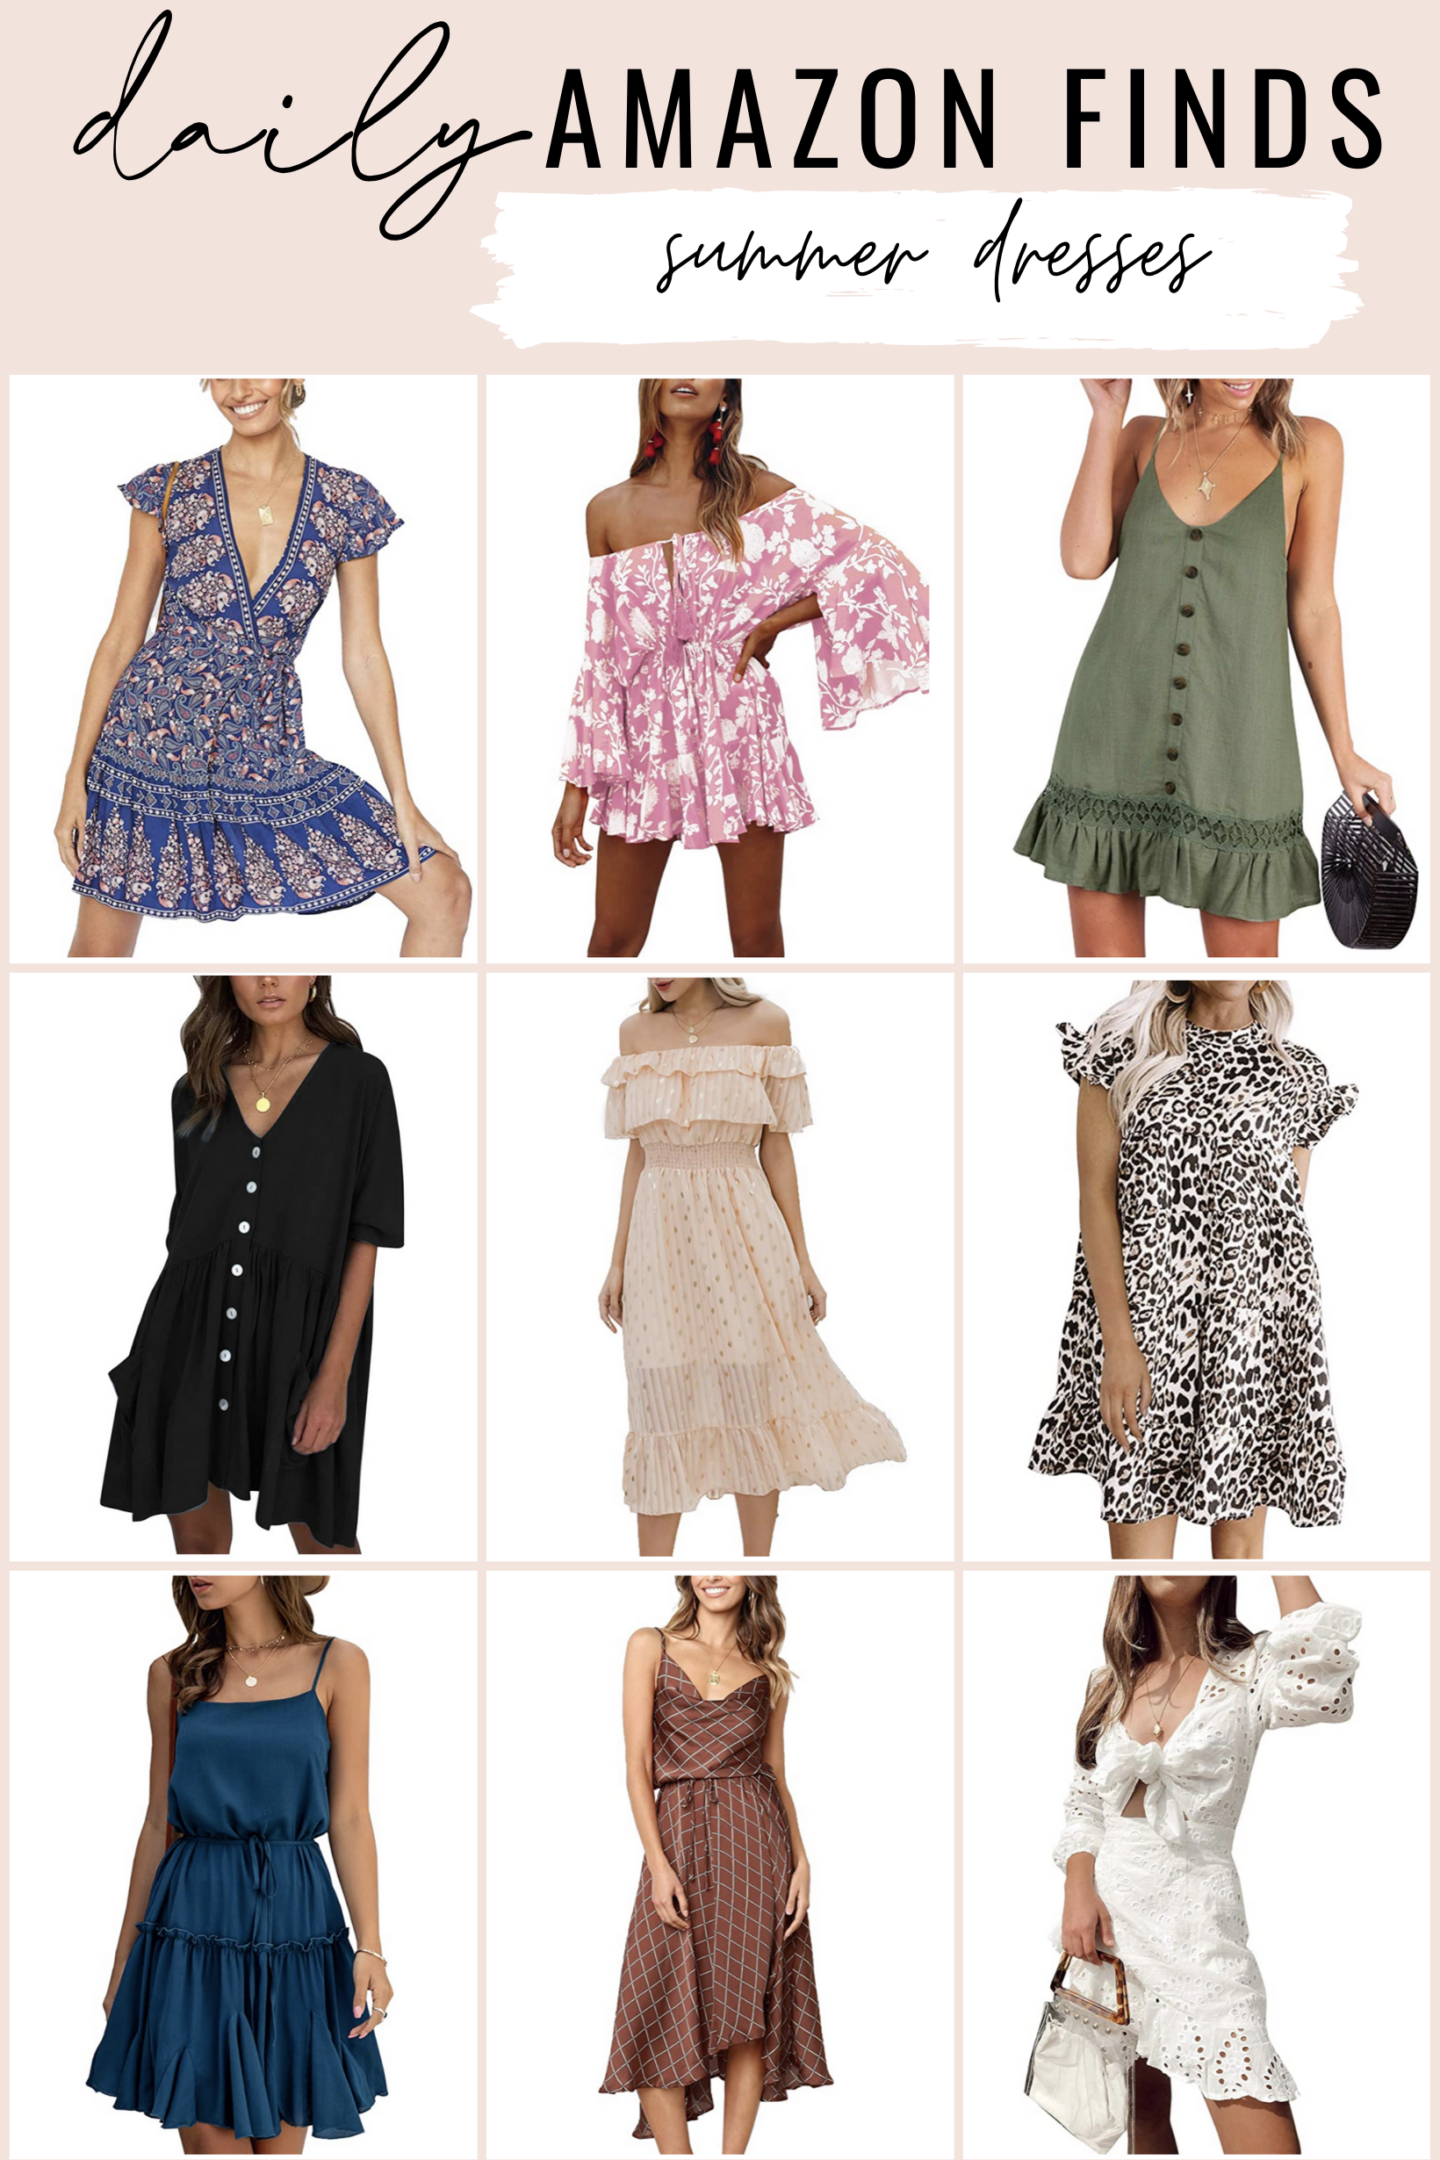 Amazon Daily Finds - Amazon Summer Dresses